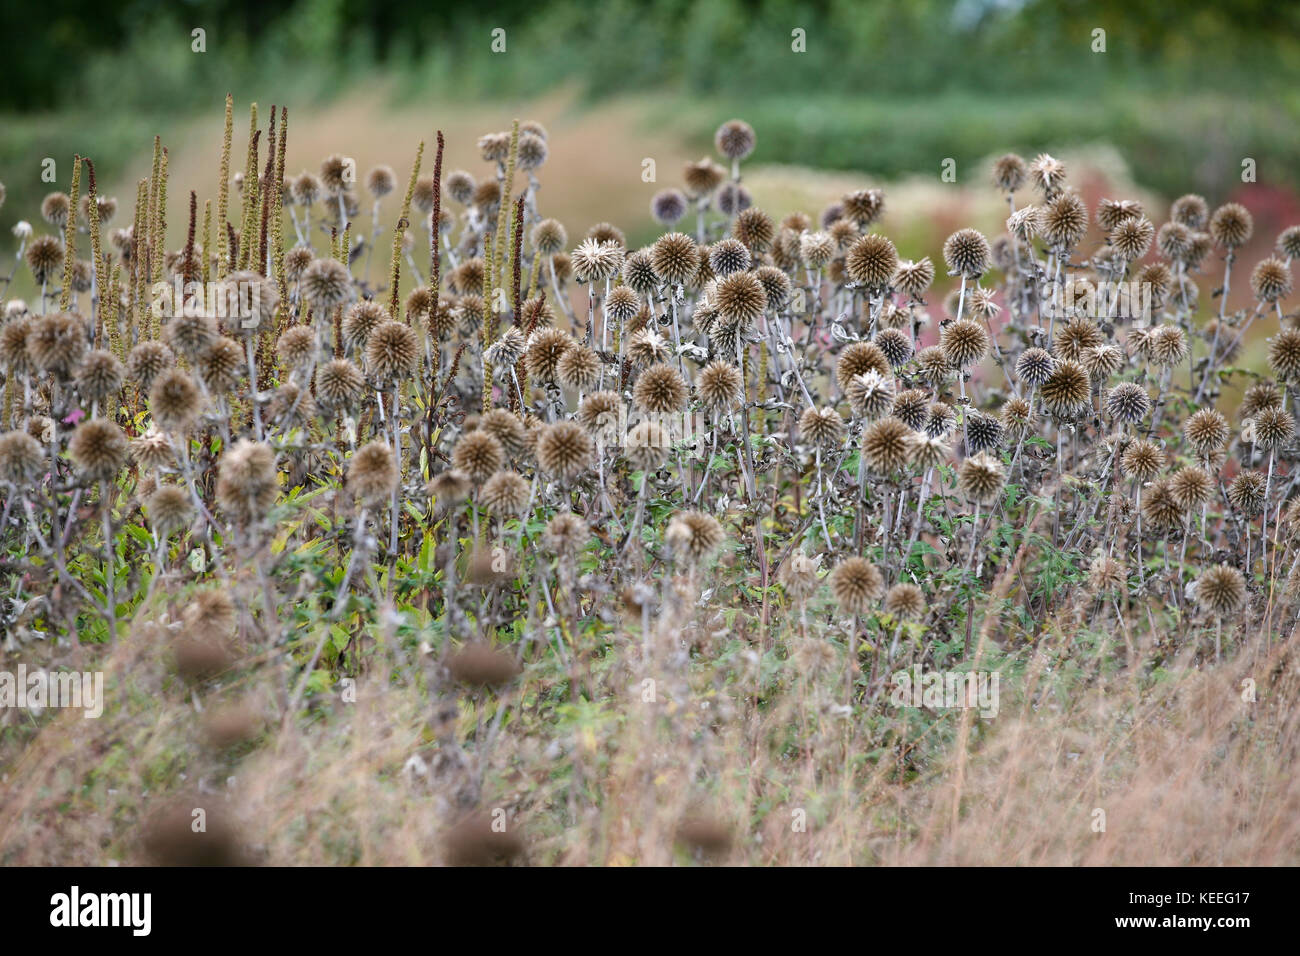 Echinops ritro seed heads in grasses, autumn interest in the garden - Stock Image